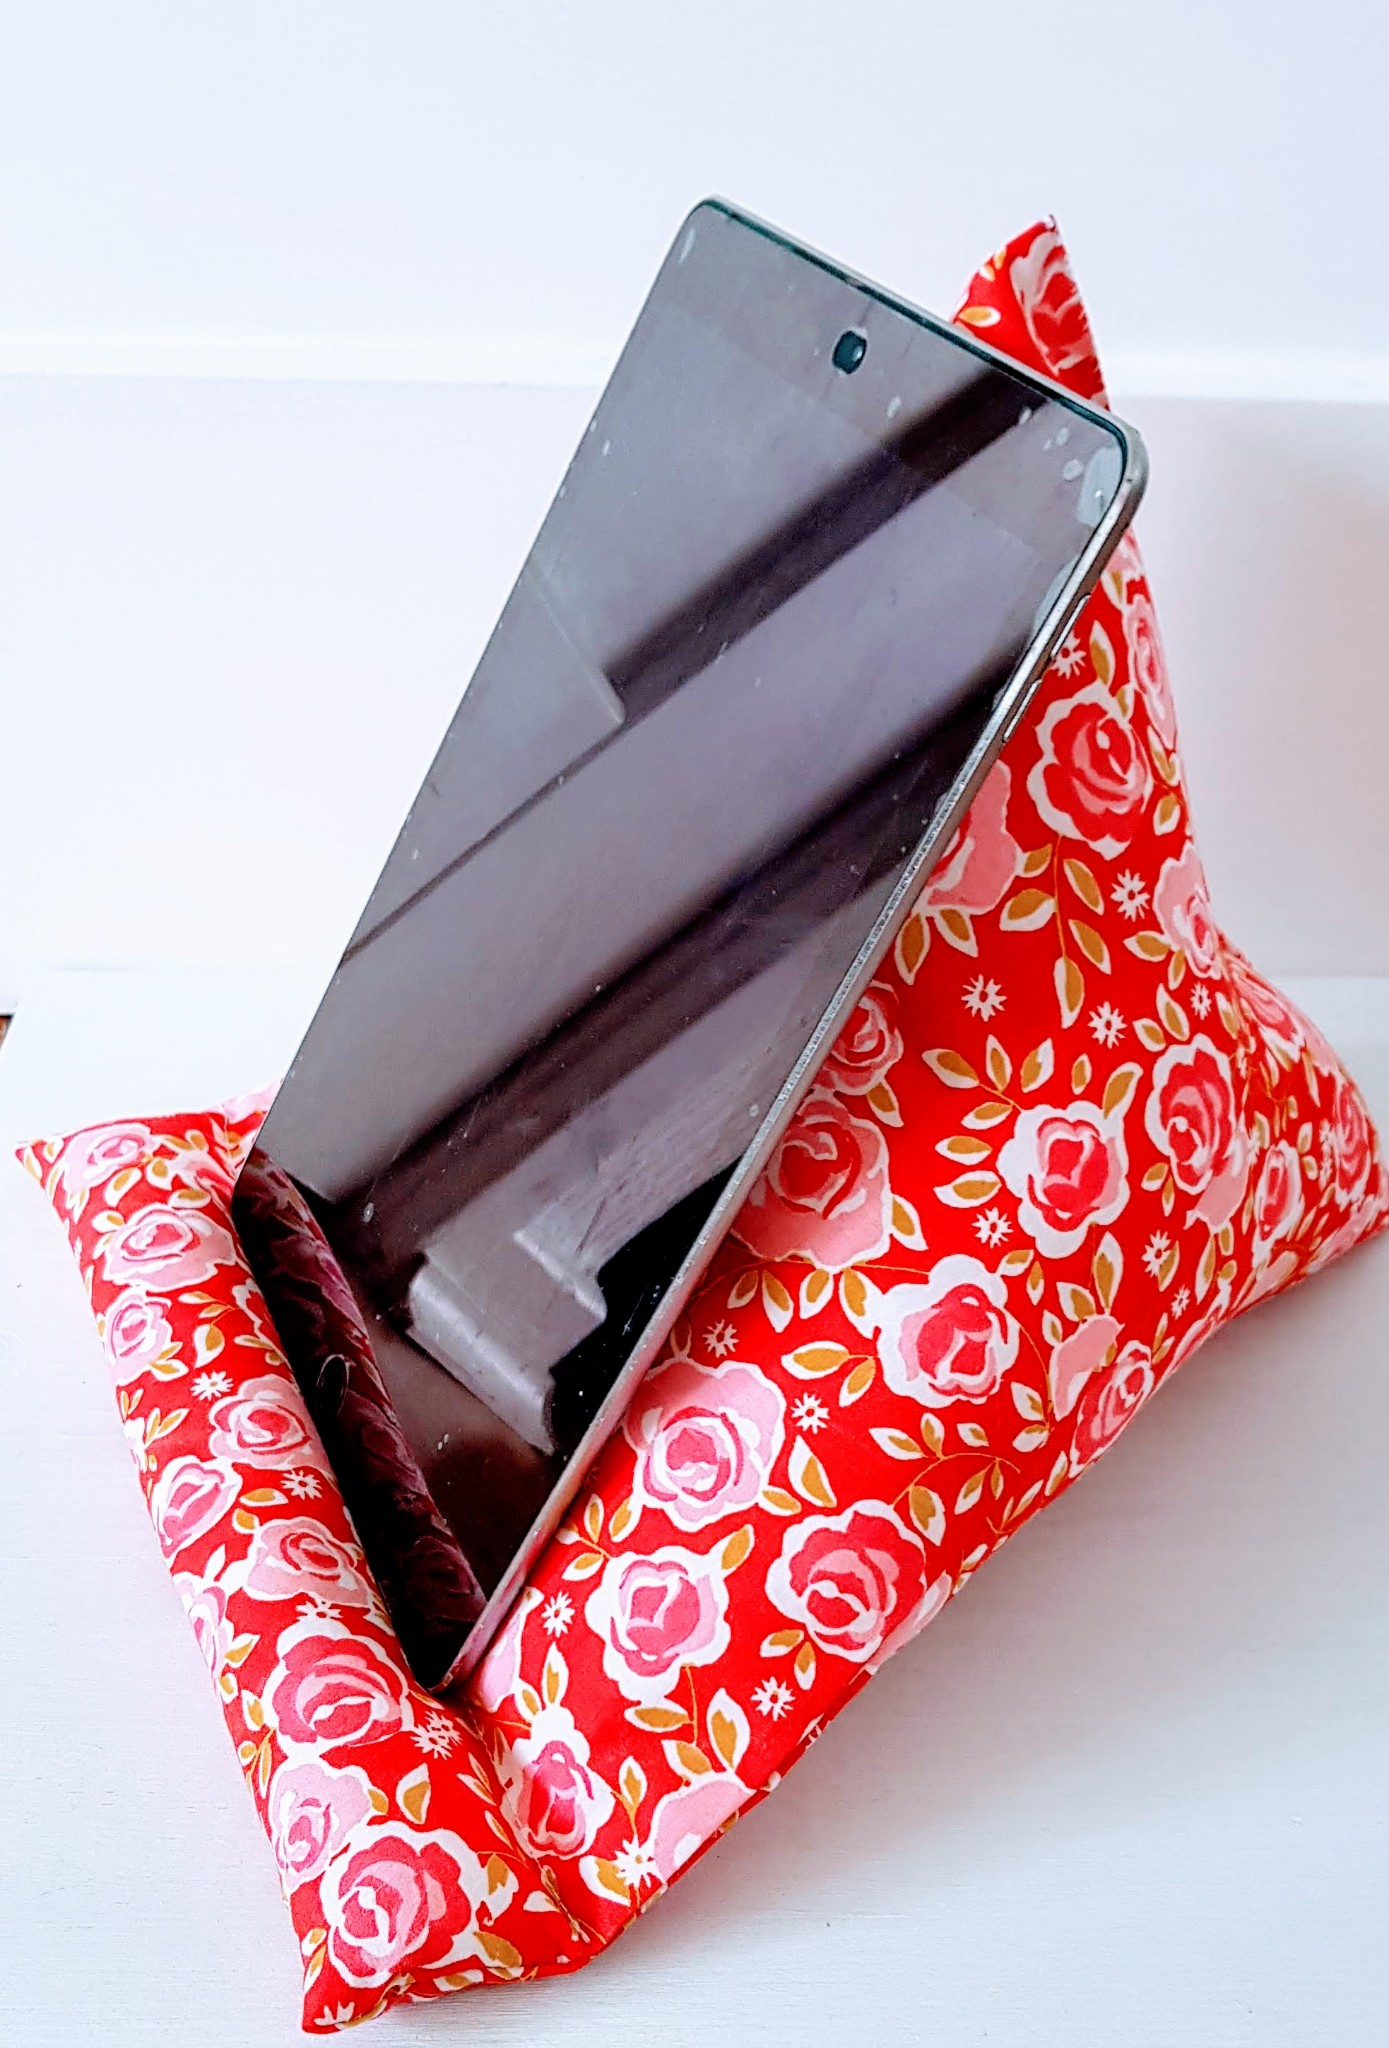 Ipad Cushion Floral Gift Tablet Stand Tech Accessories Floral Cushion Ipad Rest Gift For Her